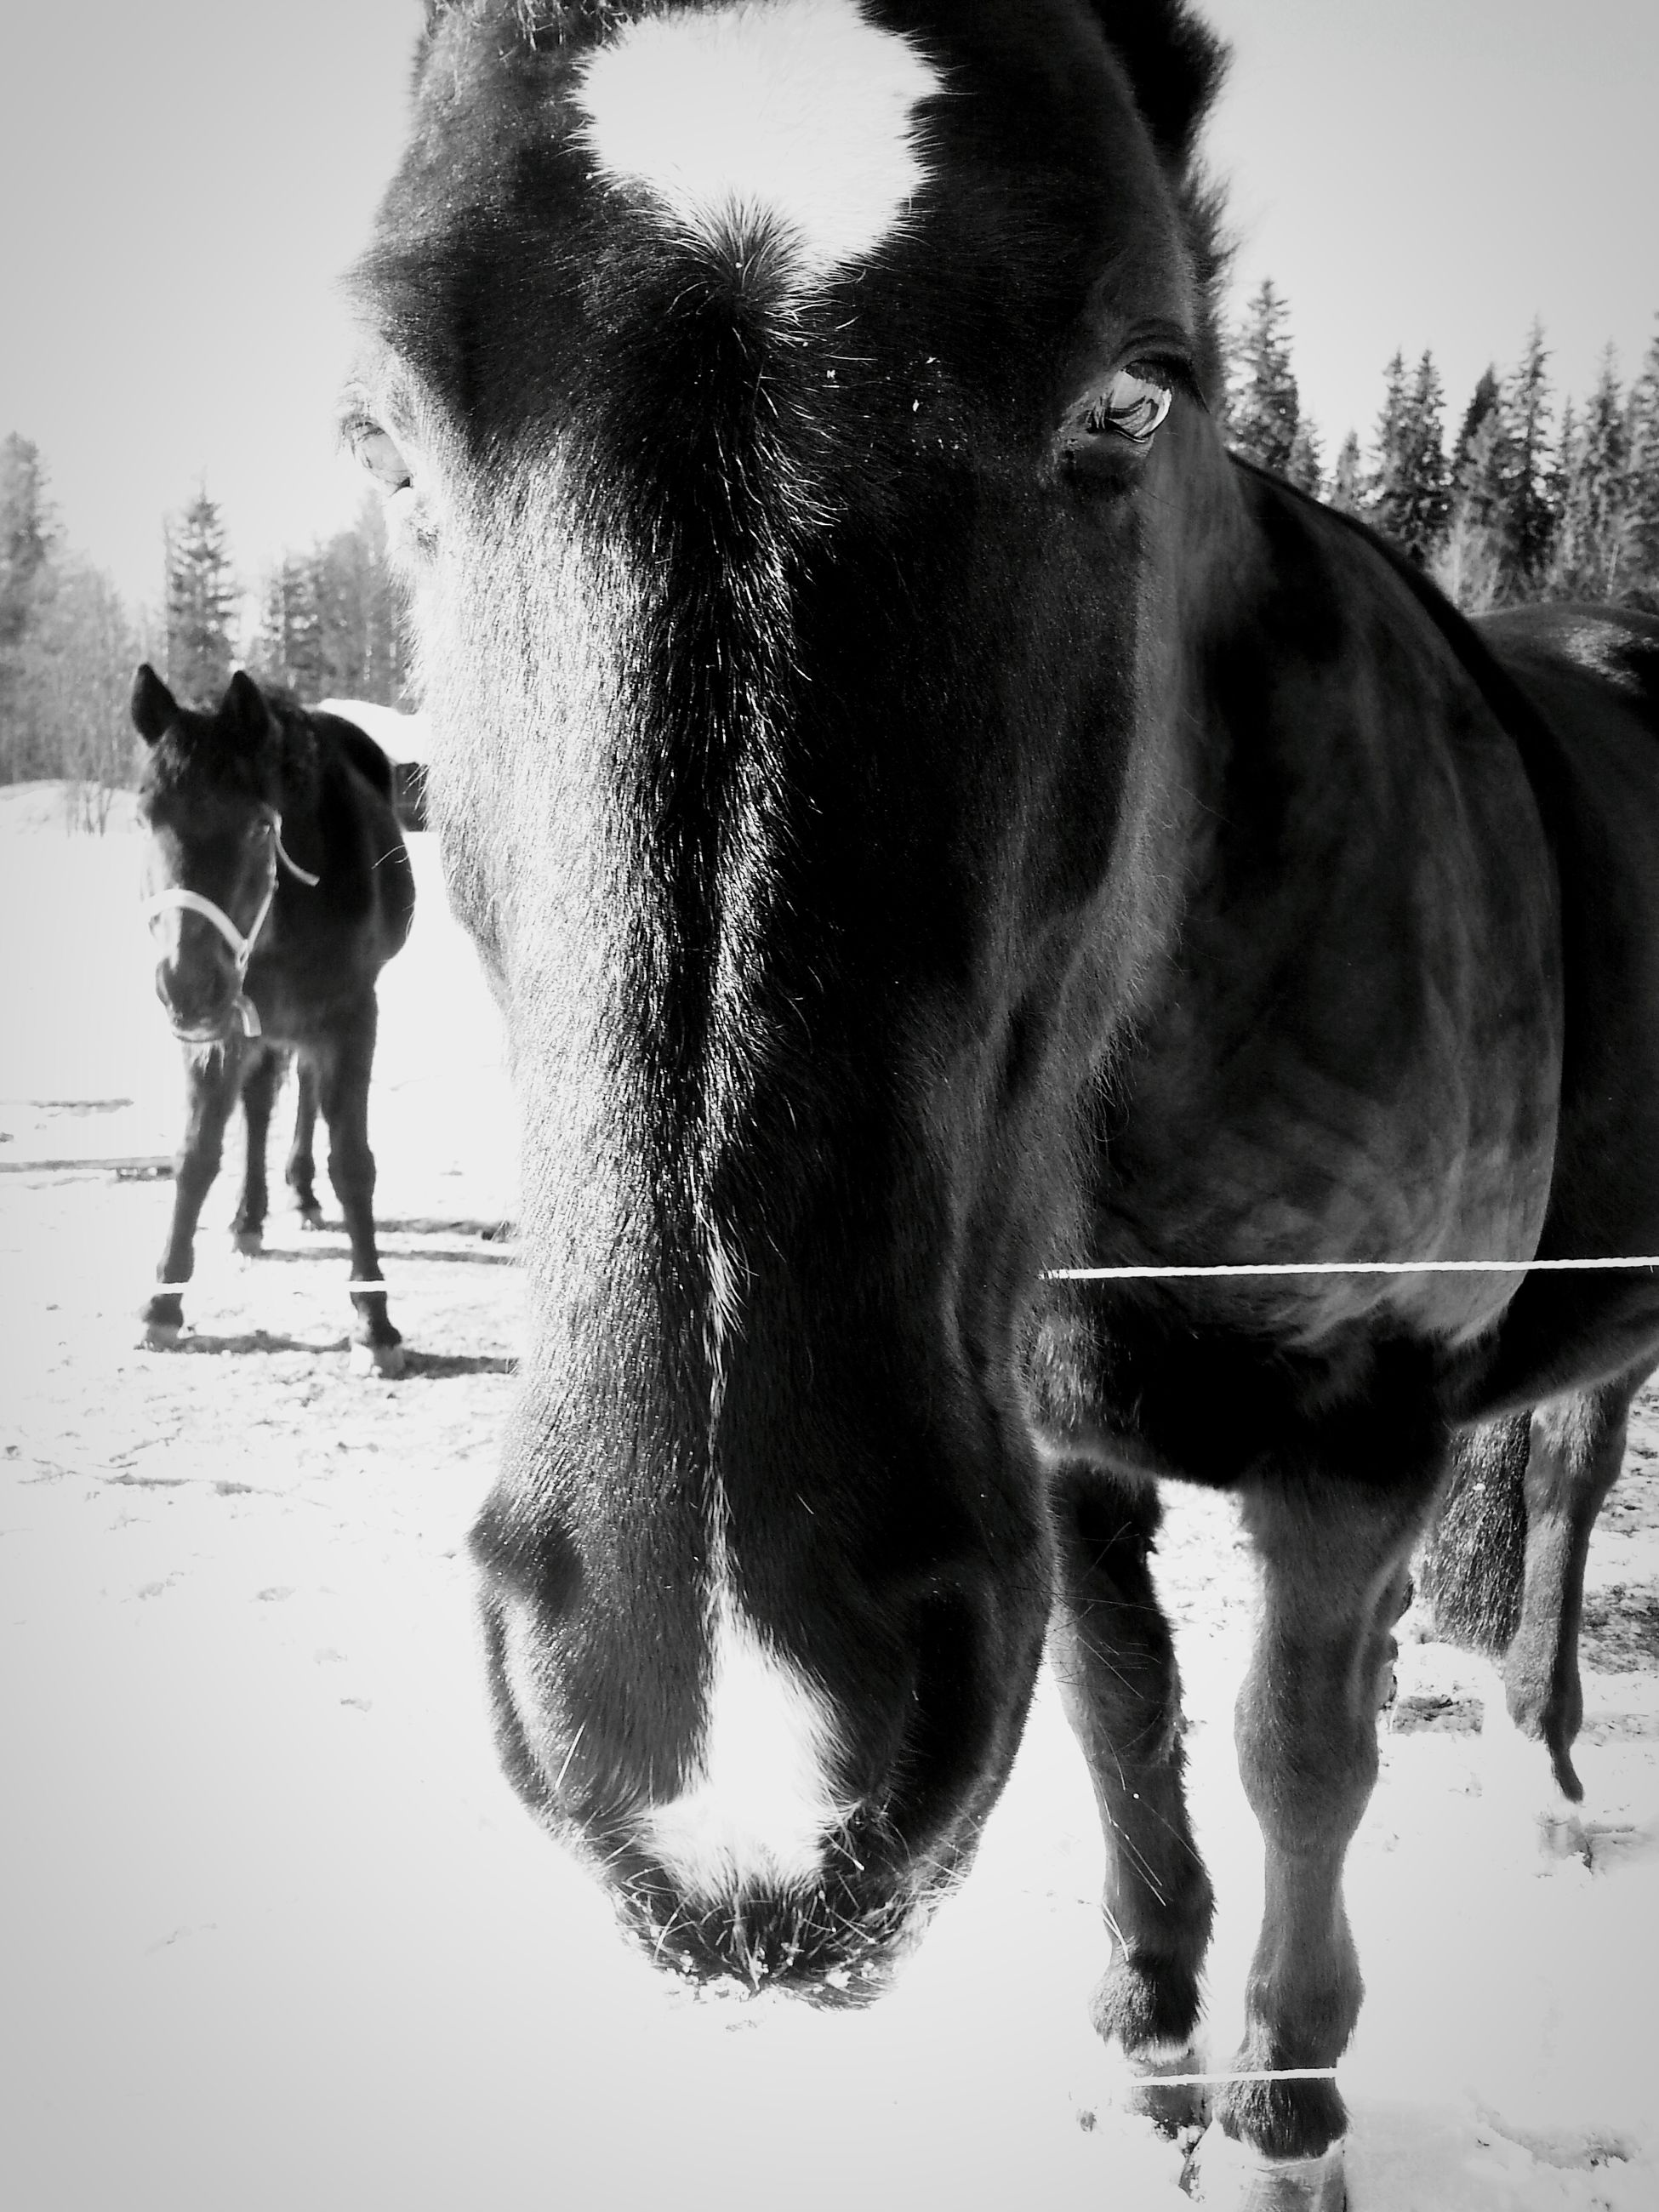 domestic animals, animal themes, mammal, horse, one animal, standing, working animal, two animals, livestock, pets, dog, field, herbivorous, walking, outdoors, black color, portrait, day, focus on foreground, full length